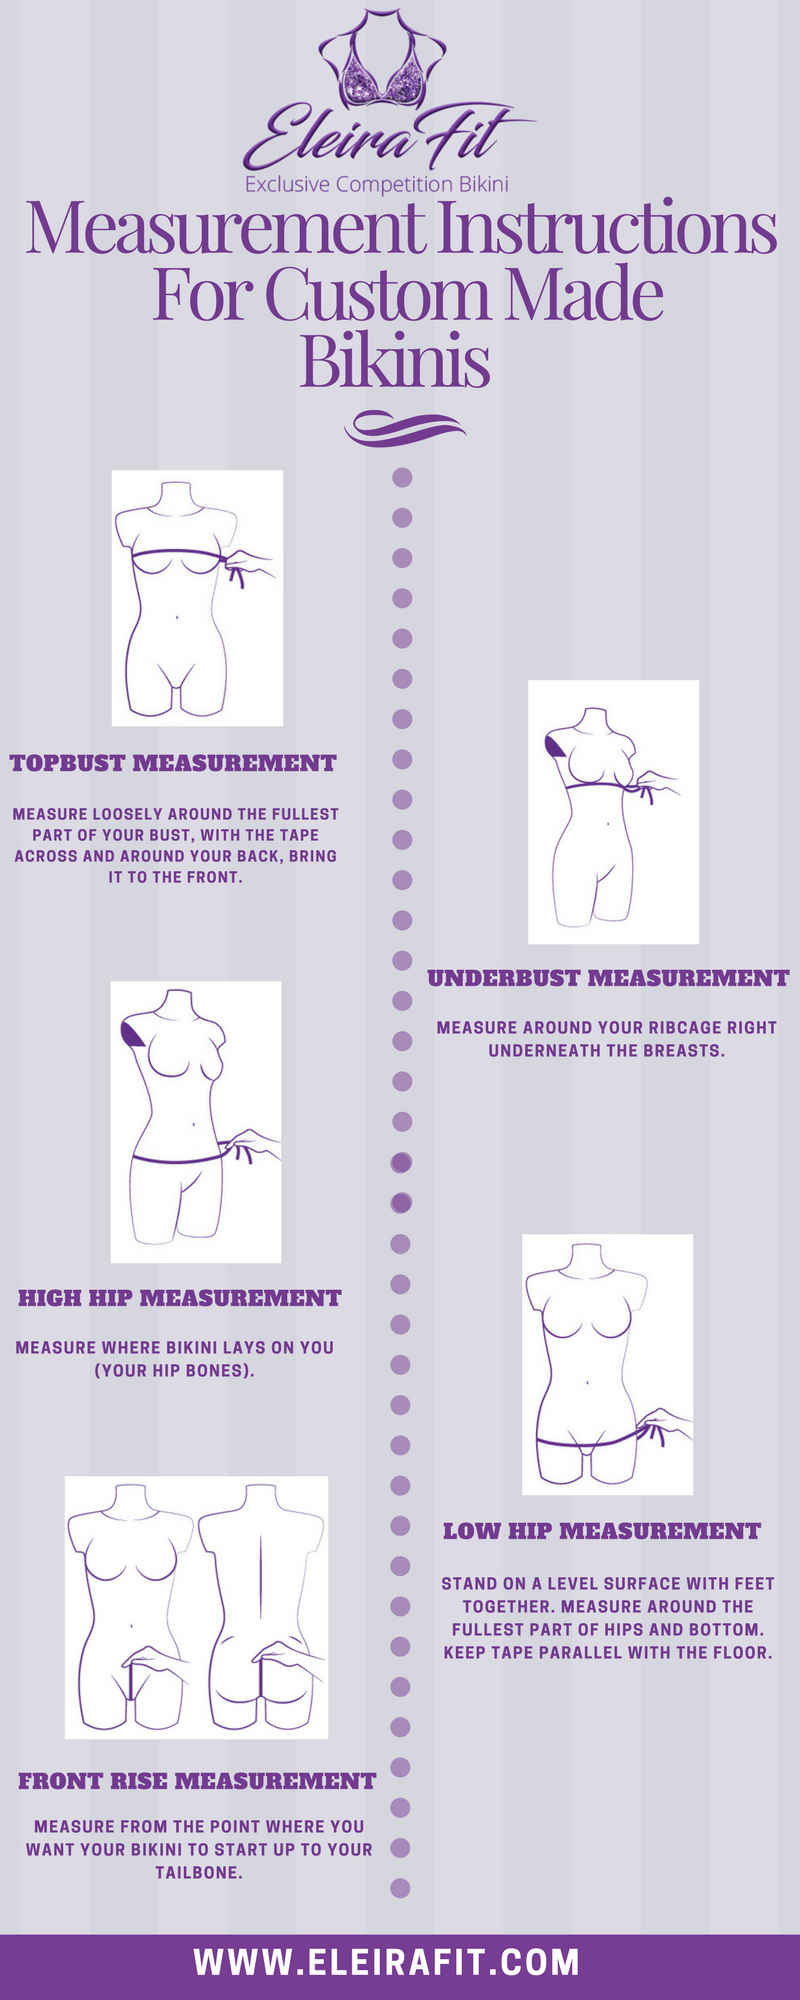 How to take measurements for competition bikinis